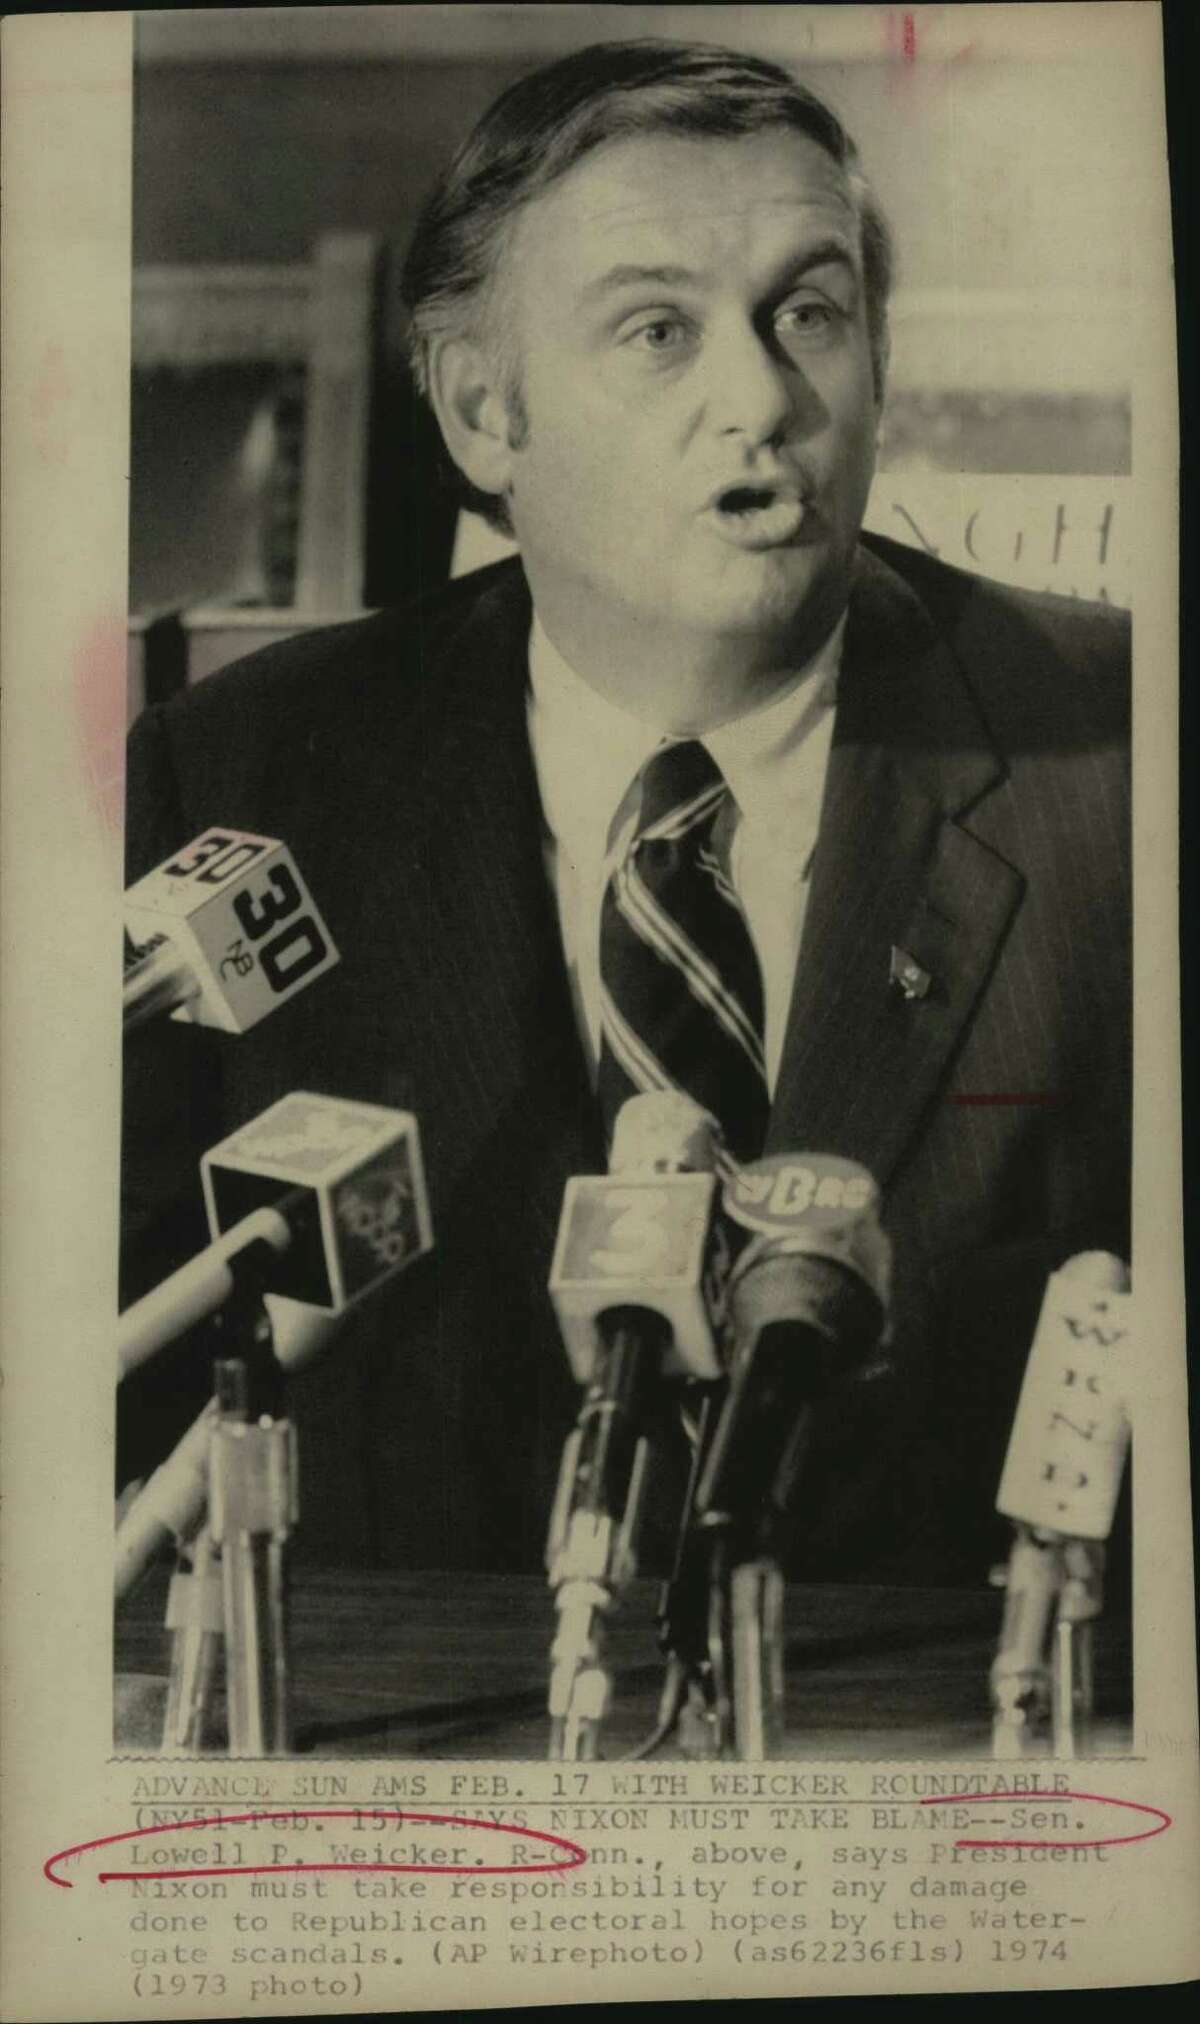 Senator Lowell P. Weicker, Republican/Connecticut, above, says President Nixon must take responsibility for any damage done to Republican electoral hopes by the Watergate scandals.